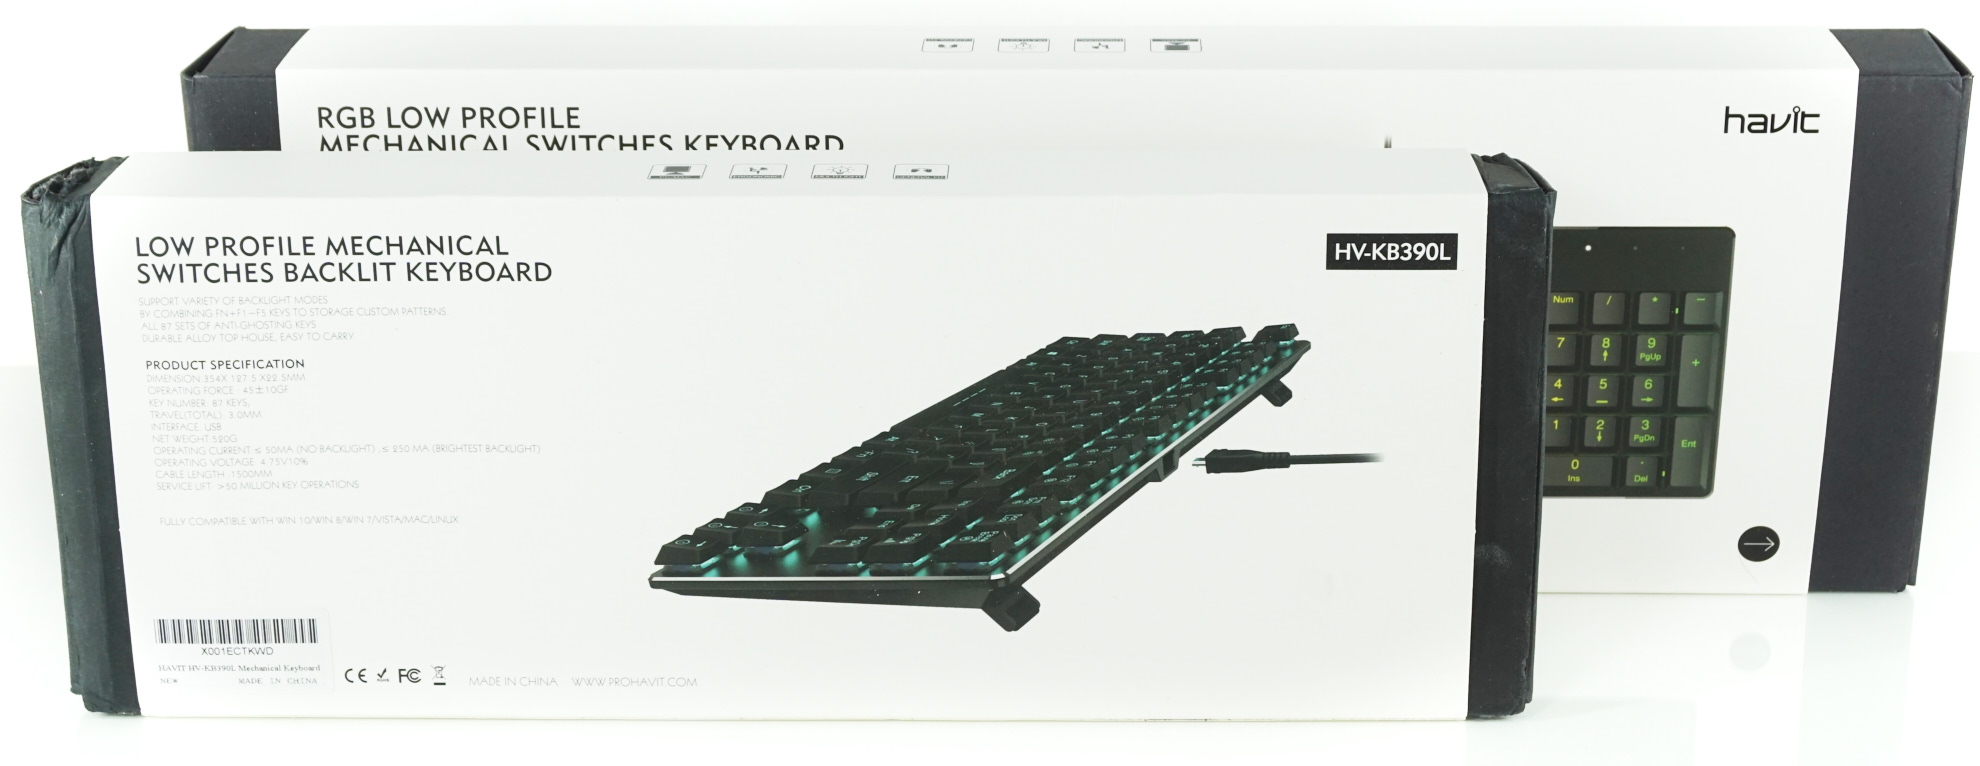 4cb07ed31a7 Among other things, HAVIT designs and produces mechanical keyboards. When  the company approached us to offer us samples, the design of one particular  ...